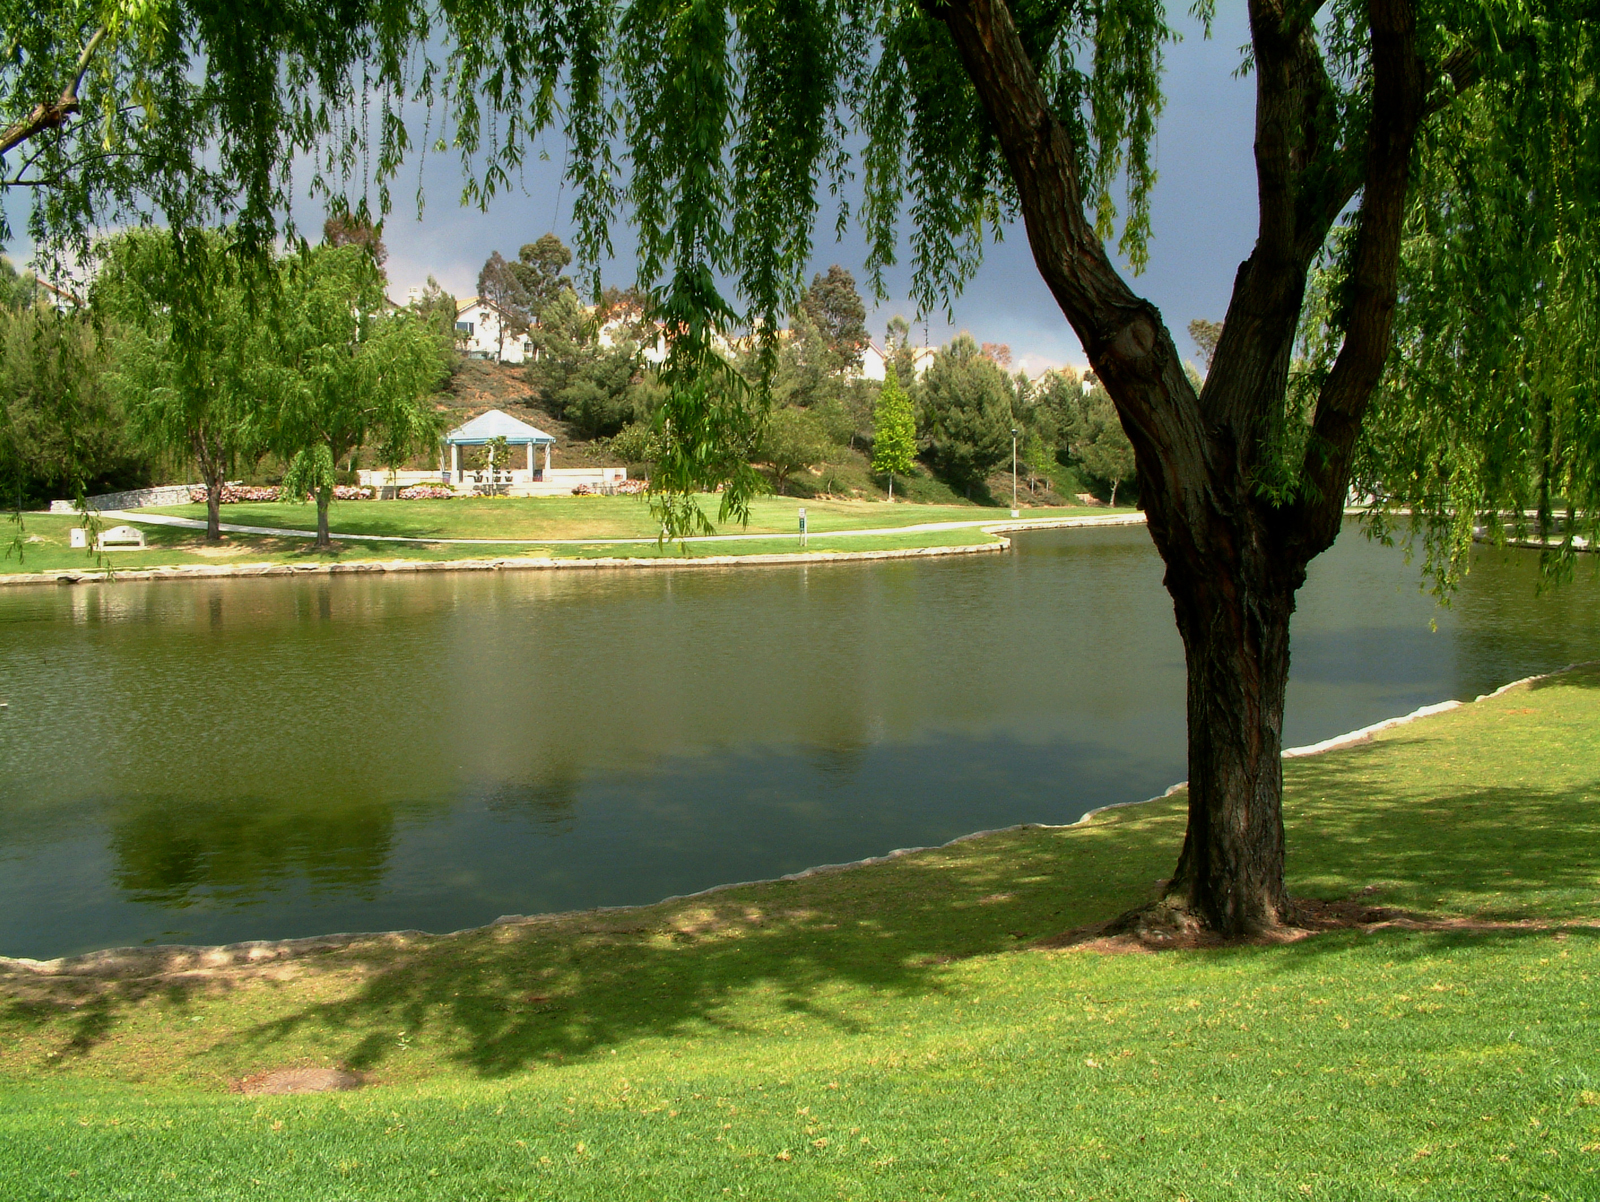 Chino Hills, CA - Official Website